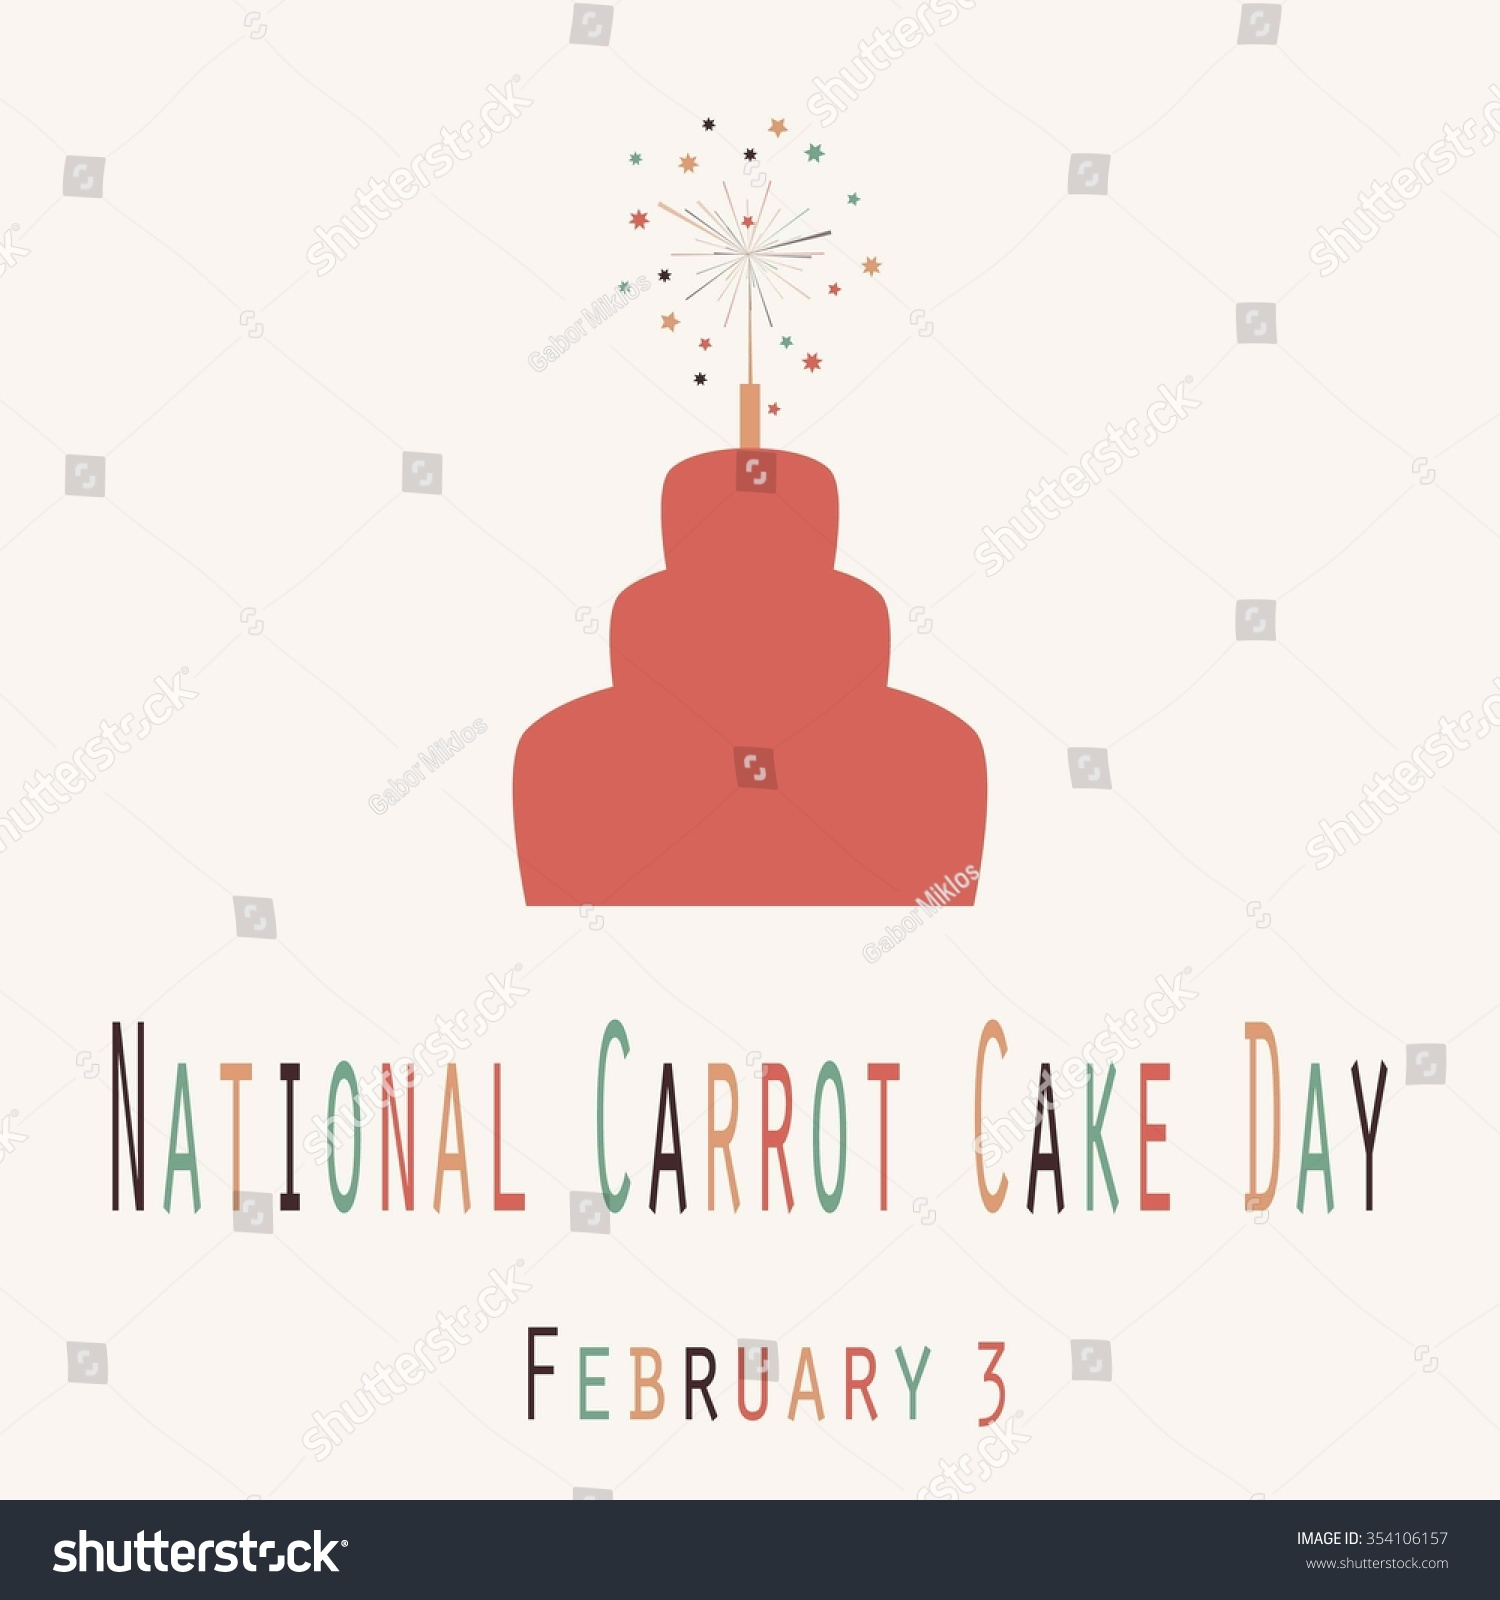 National Carrot Cake Day Funny Unofficial Stock Vector 354106157 ...